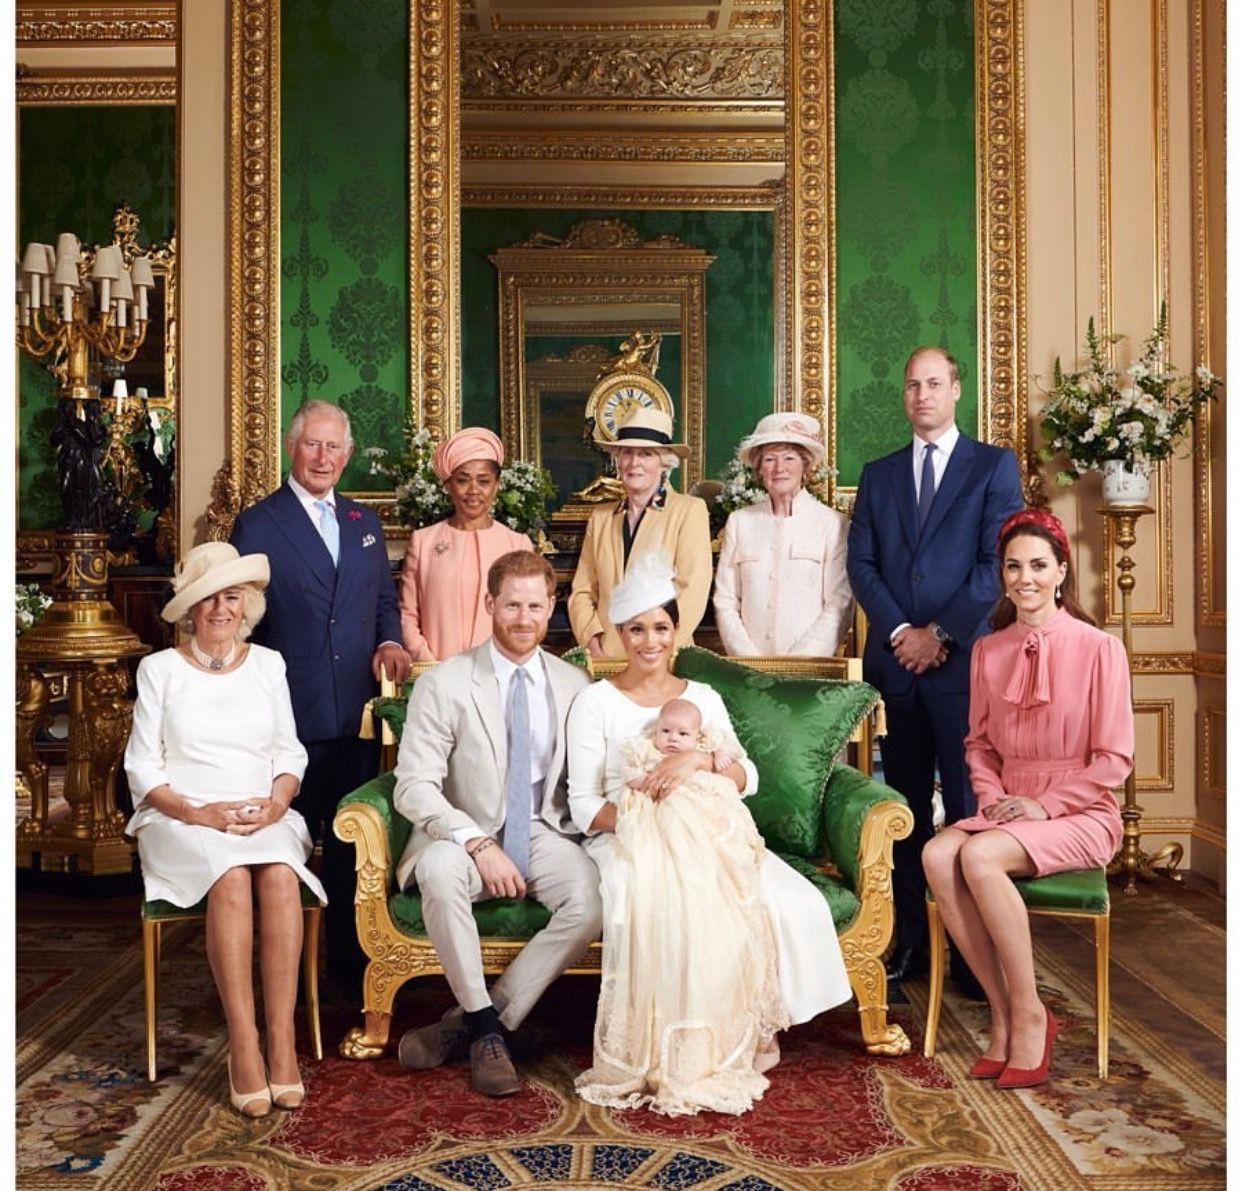 Here's Who People *Think* Baby Archie's Godparents Are After Yesterday's Christening